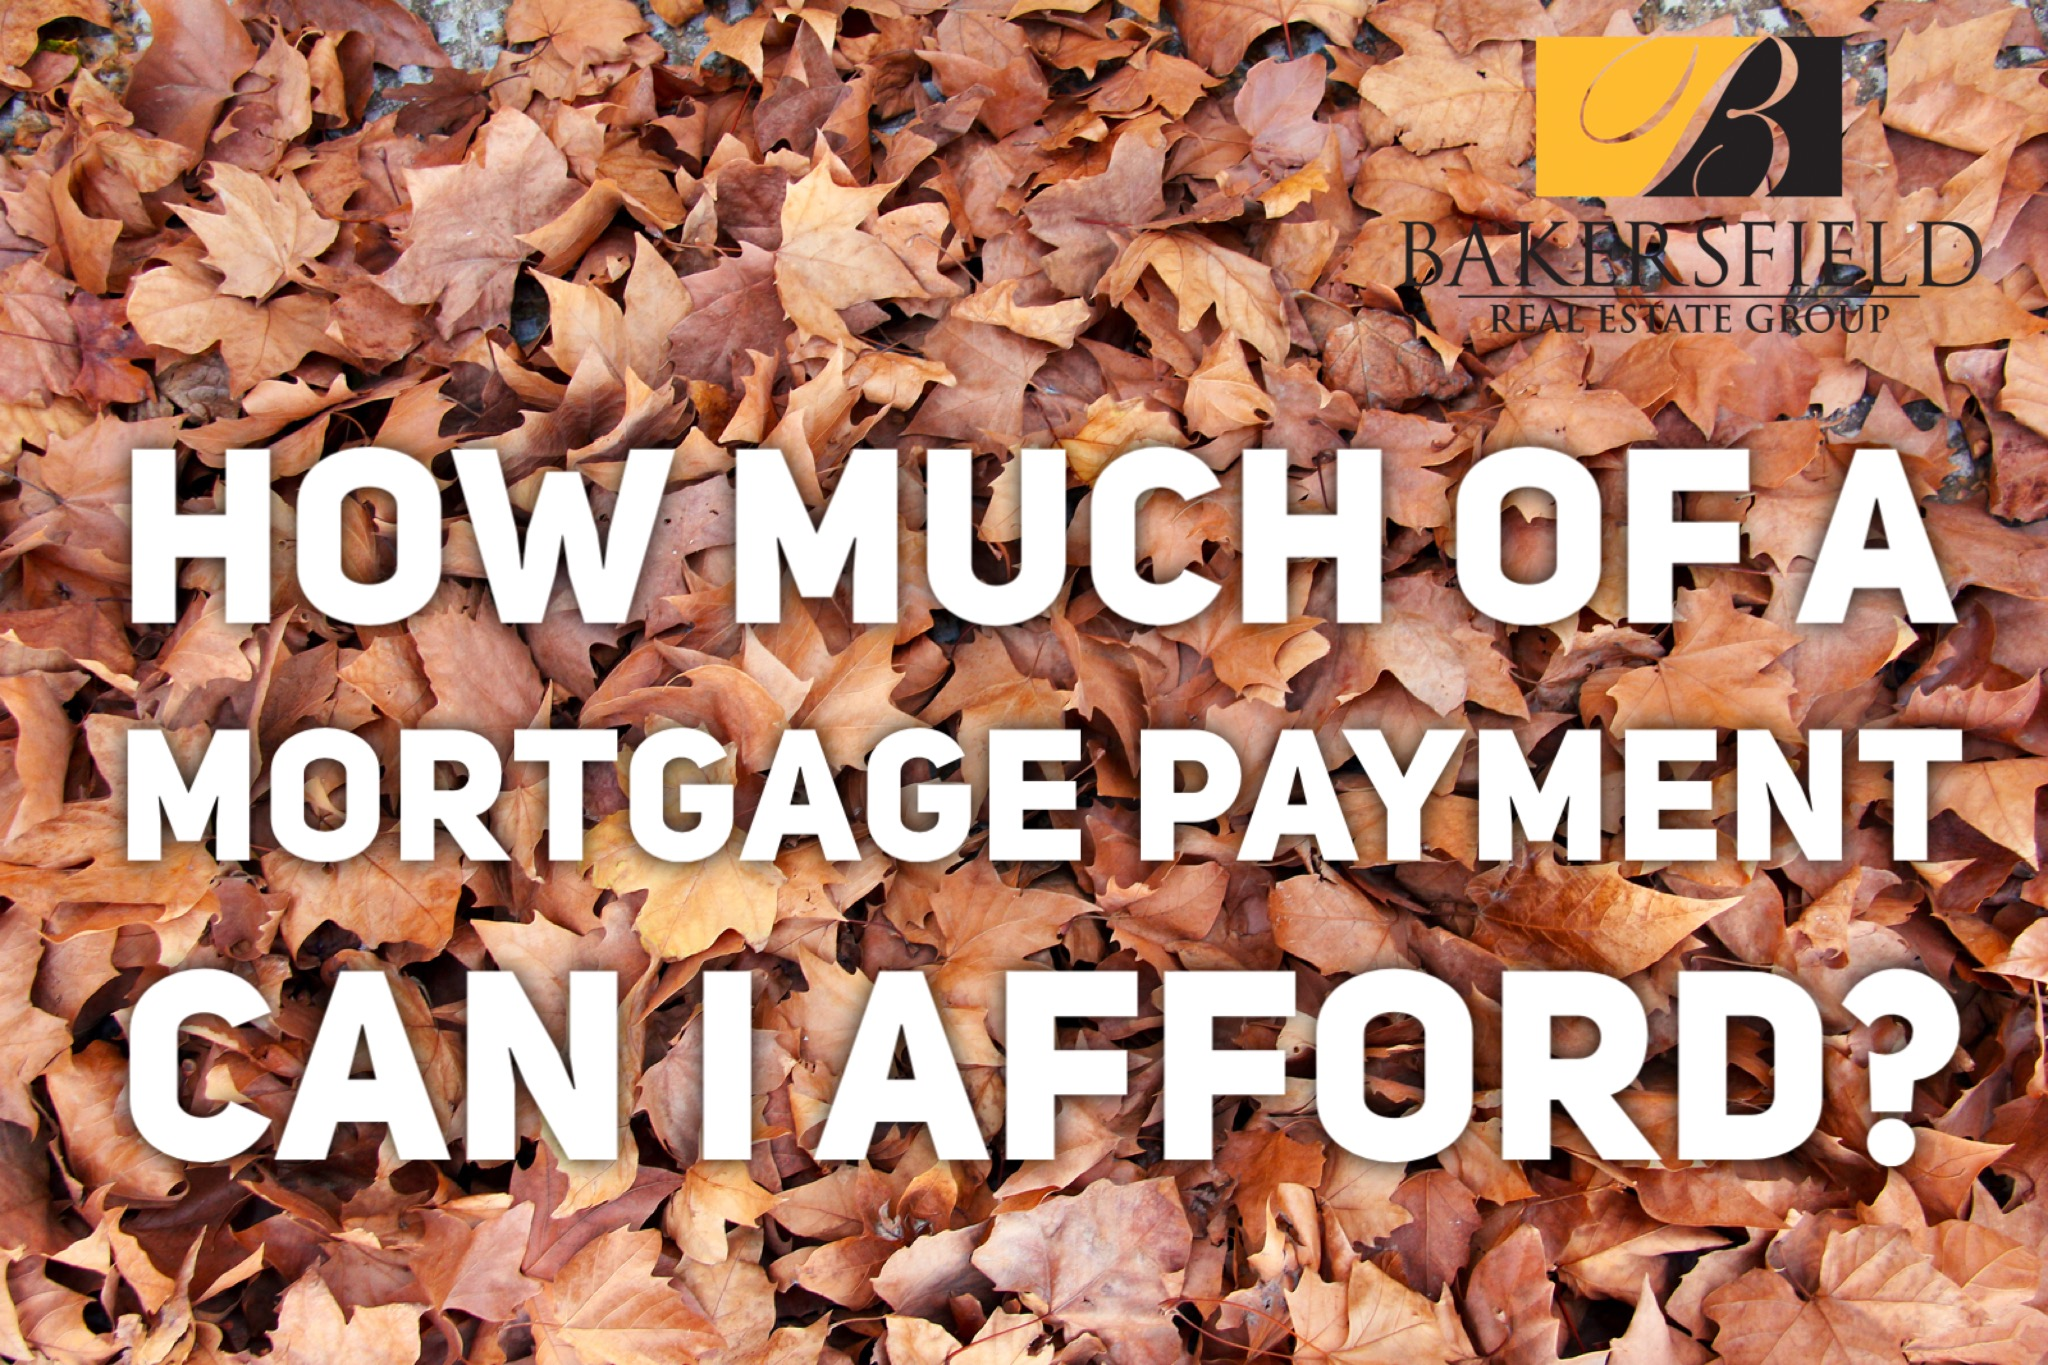 How much house payment can I afford?